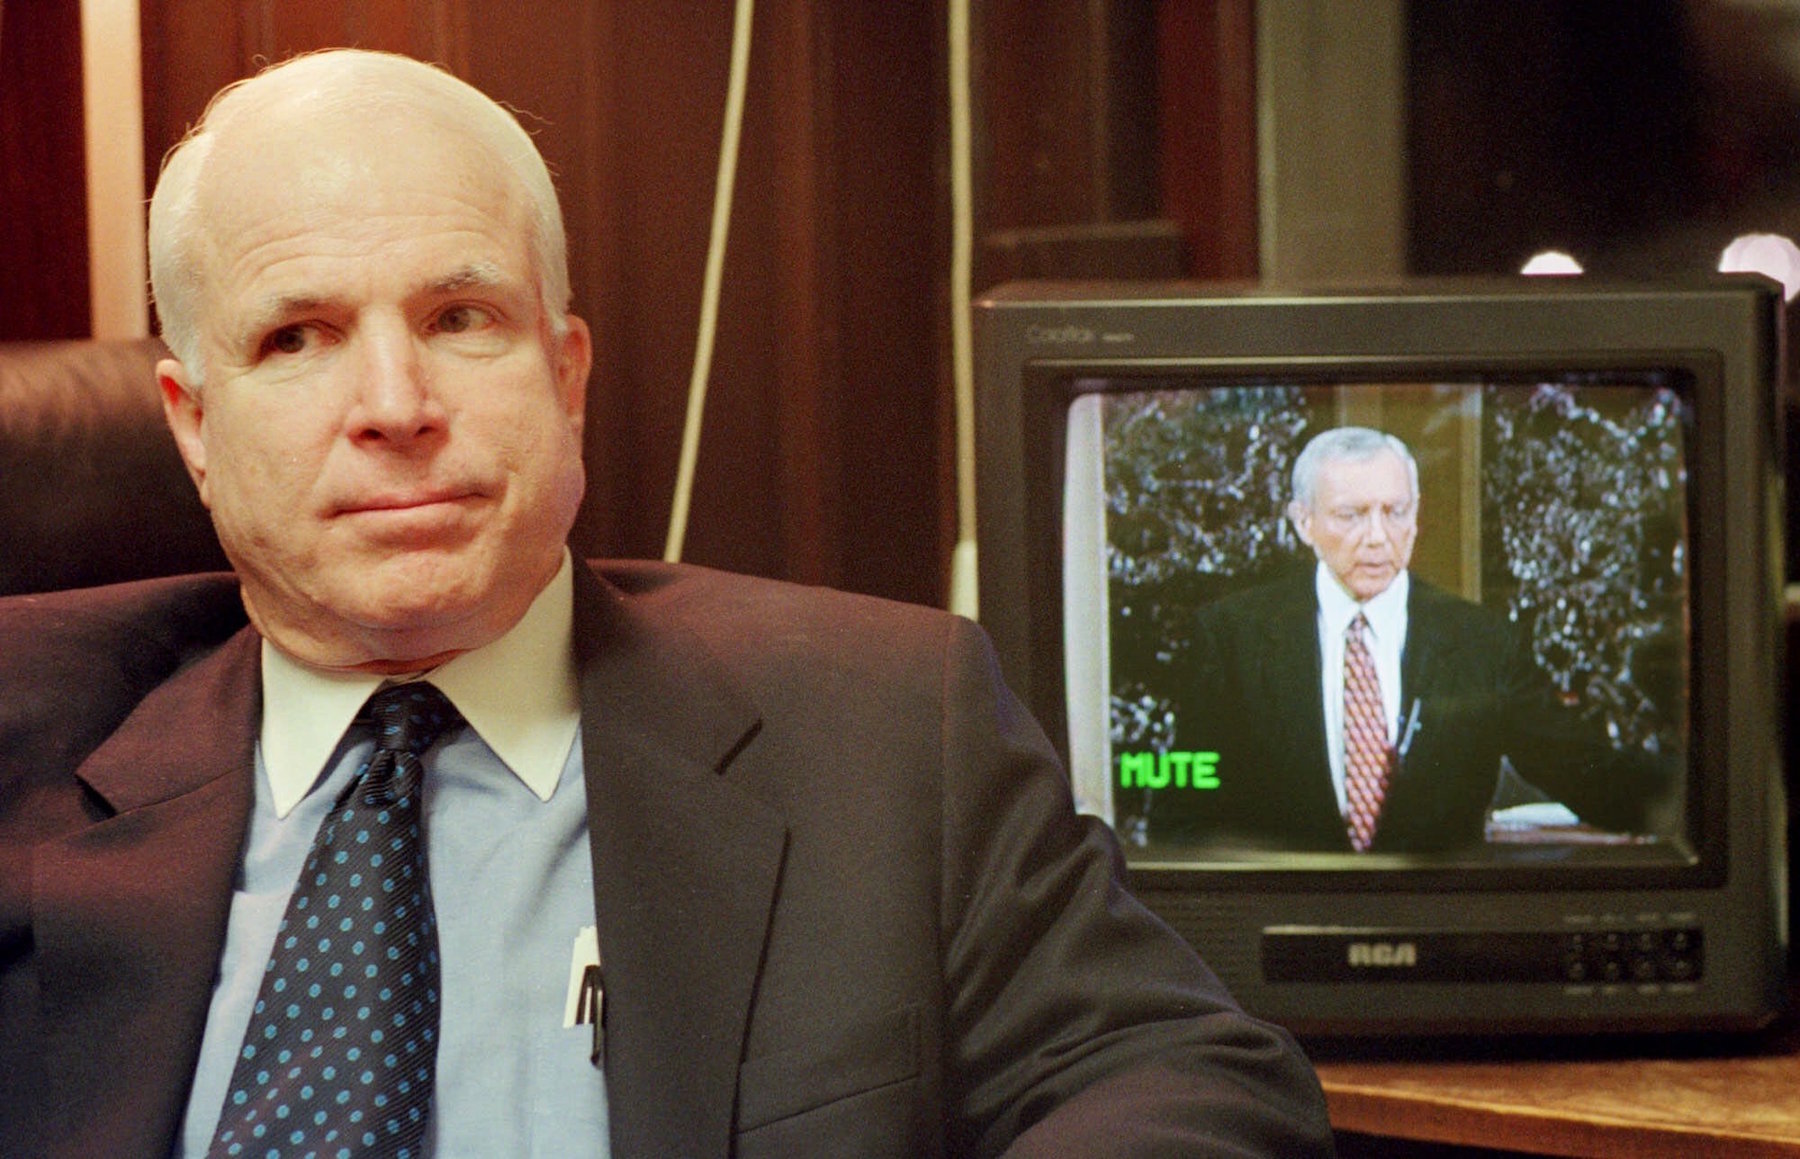 <div class='meta'><div class='origin-logo' data-origin='AP'></div><span class='caption-text' data-credit='AP Photo/Stephan Savoia'>Sen. John McCain, R-Ariz., sits in his chief of staffs' office on March 22, 2001, in Washington.</span></div>